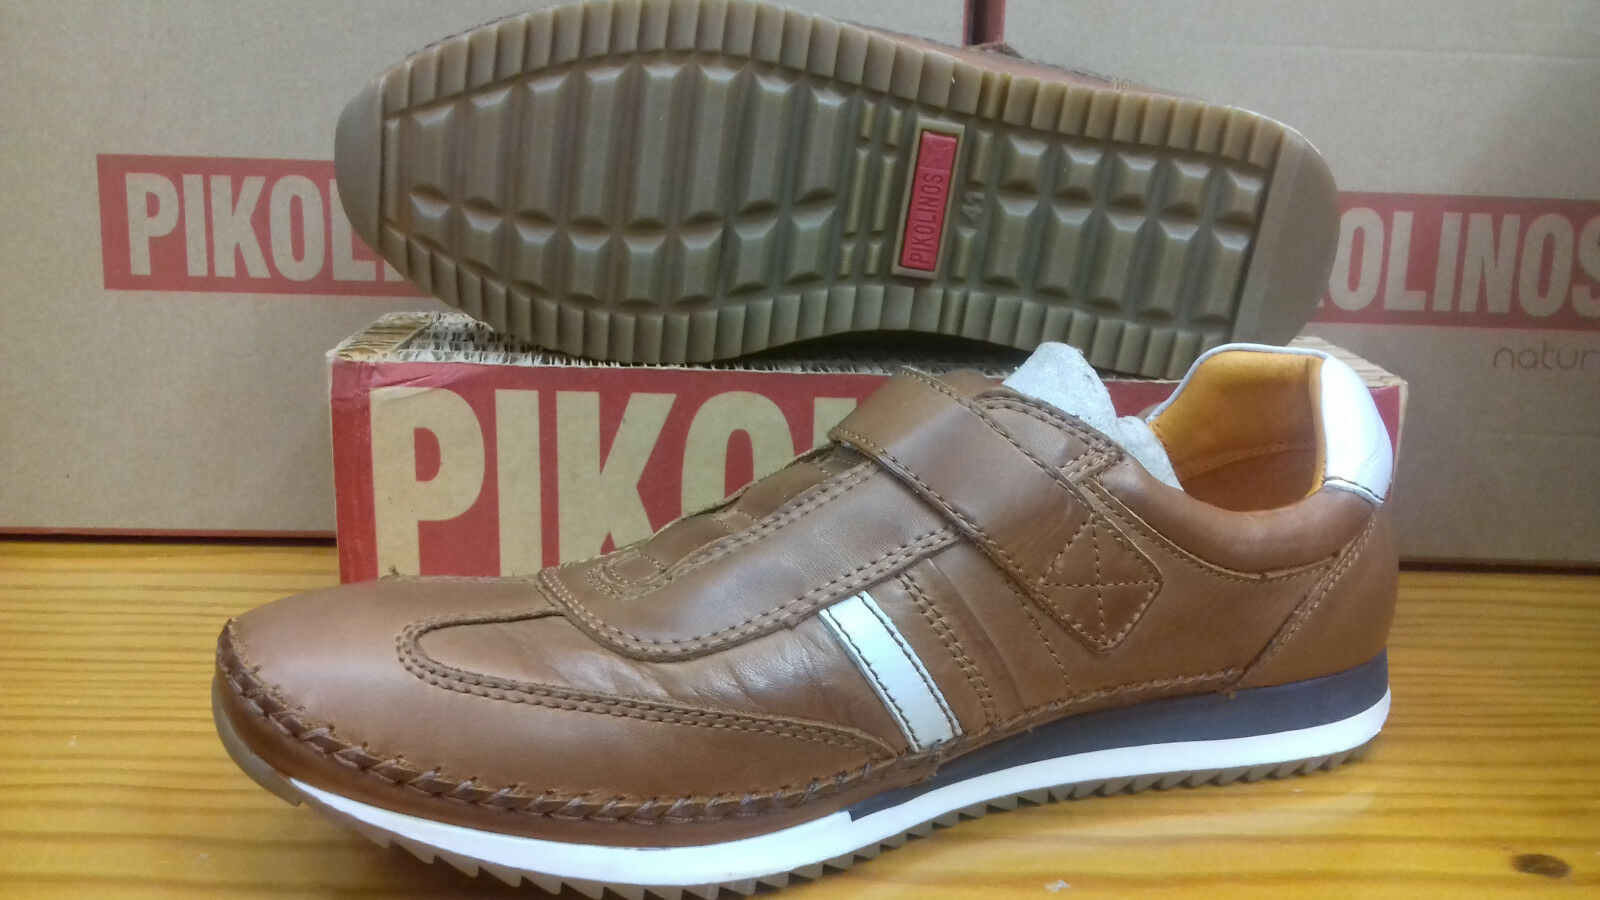 Pikolinos shoes footwear m2a-6021 brandy shoes skor leather leather leather velcro mens brown d3a2d6